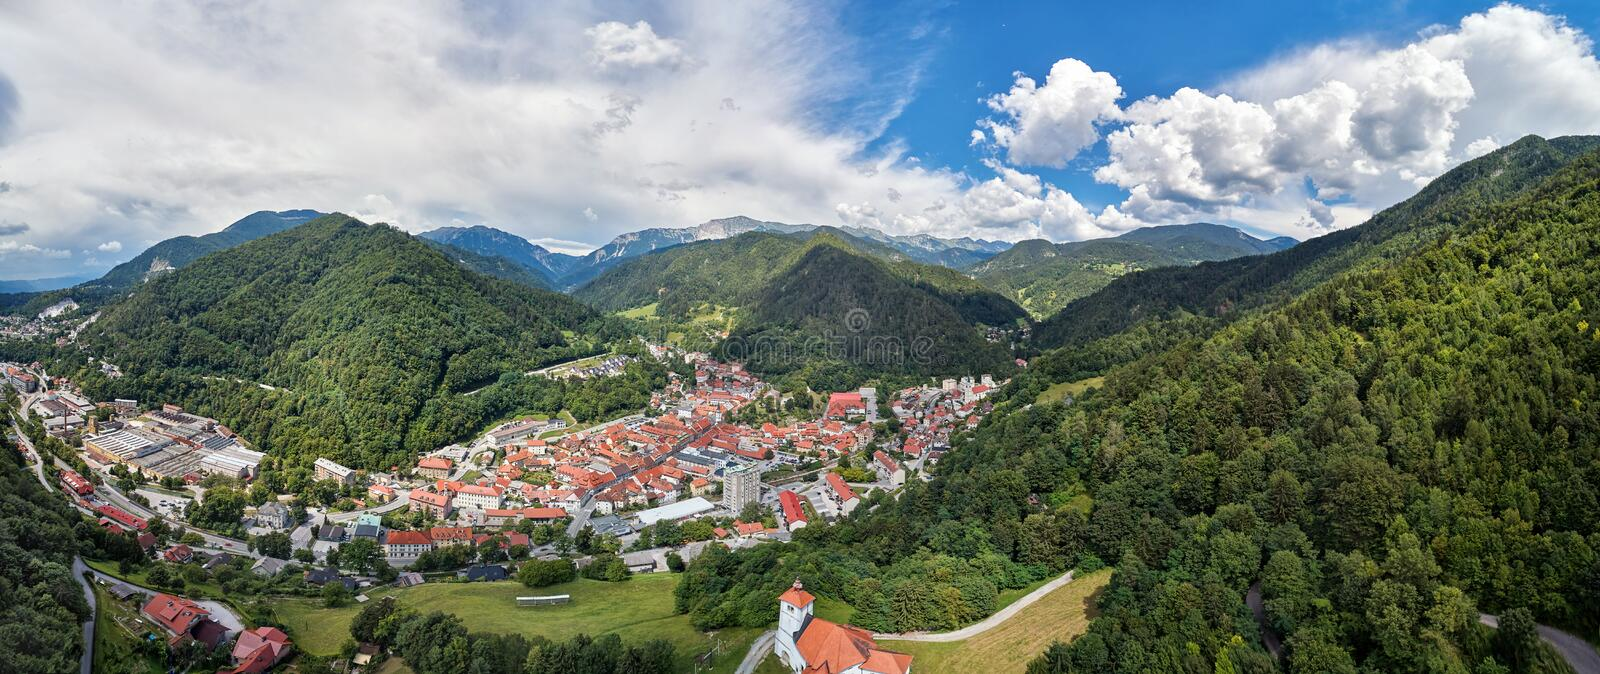 Panorama view of Trzic, Slovenia, Europe. Trzic town in Slovenia - where Radetzky began his march royalty free stock photo